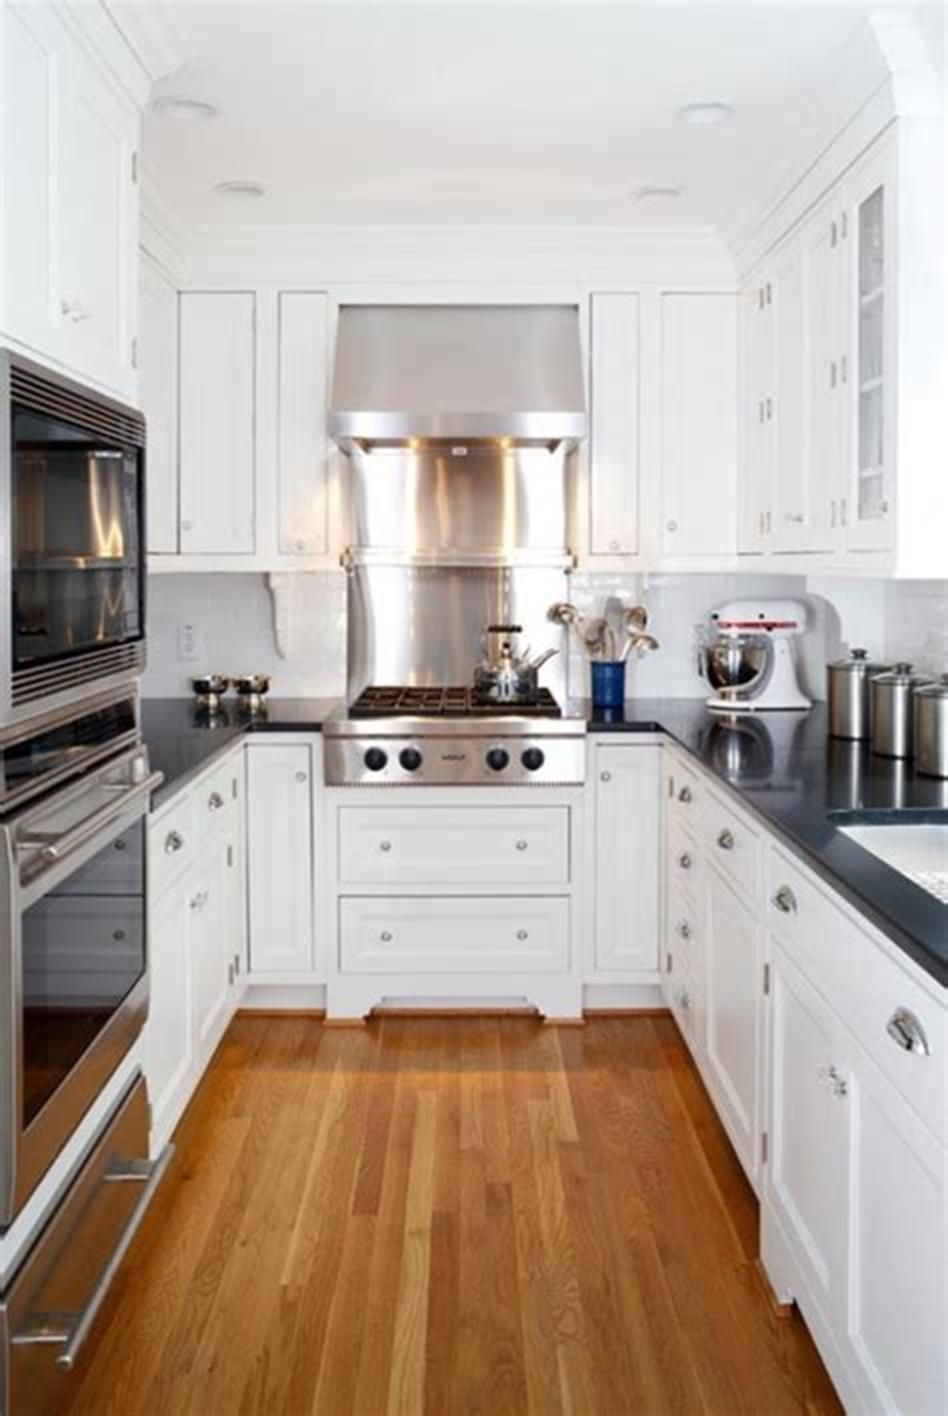 43 Amazing Kitchen Remodeling Ideas for Small Kitchens 2019 ... on narrow kitchen design, narrow landscaping ideas, narrow garden benches, narrow living room layout ideas, narrow basement finishing ideas, narrow kitchen layout, narrow kitchen storage, narrow kitchen cabinets, narrow kitchen addition ideas, narrow kitchen plans, narrow kitchen furniture, narrow patio ideas, narrow fireplace ideas, narrow kitchen decorating ideas, long kitchen ideas, narrow closet systems, small kitchen design ideas, narrow kitchen makeovers, narrow basement remodeling, small narrow kitchen ideas,